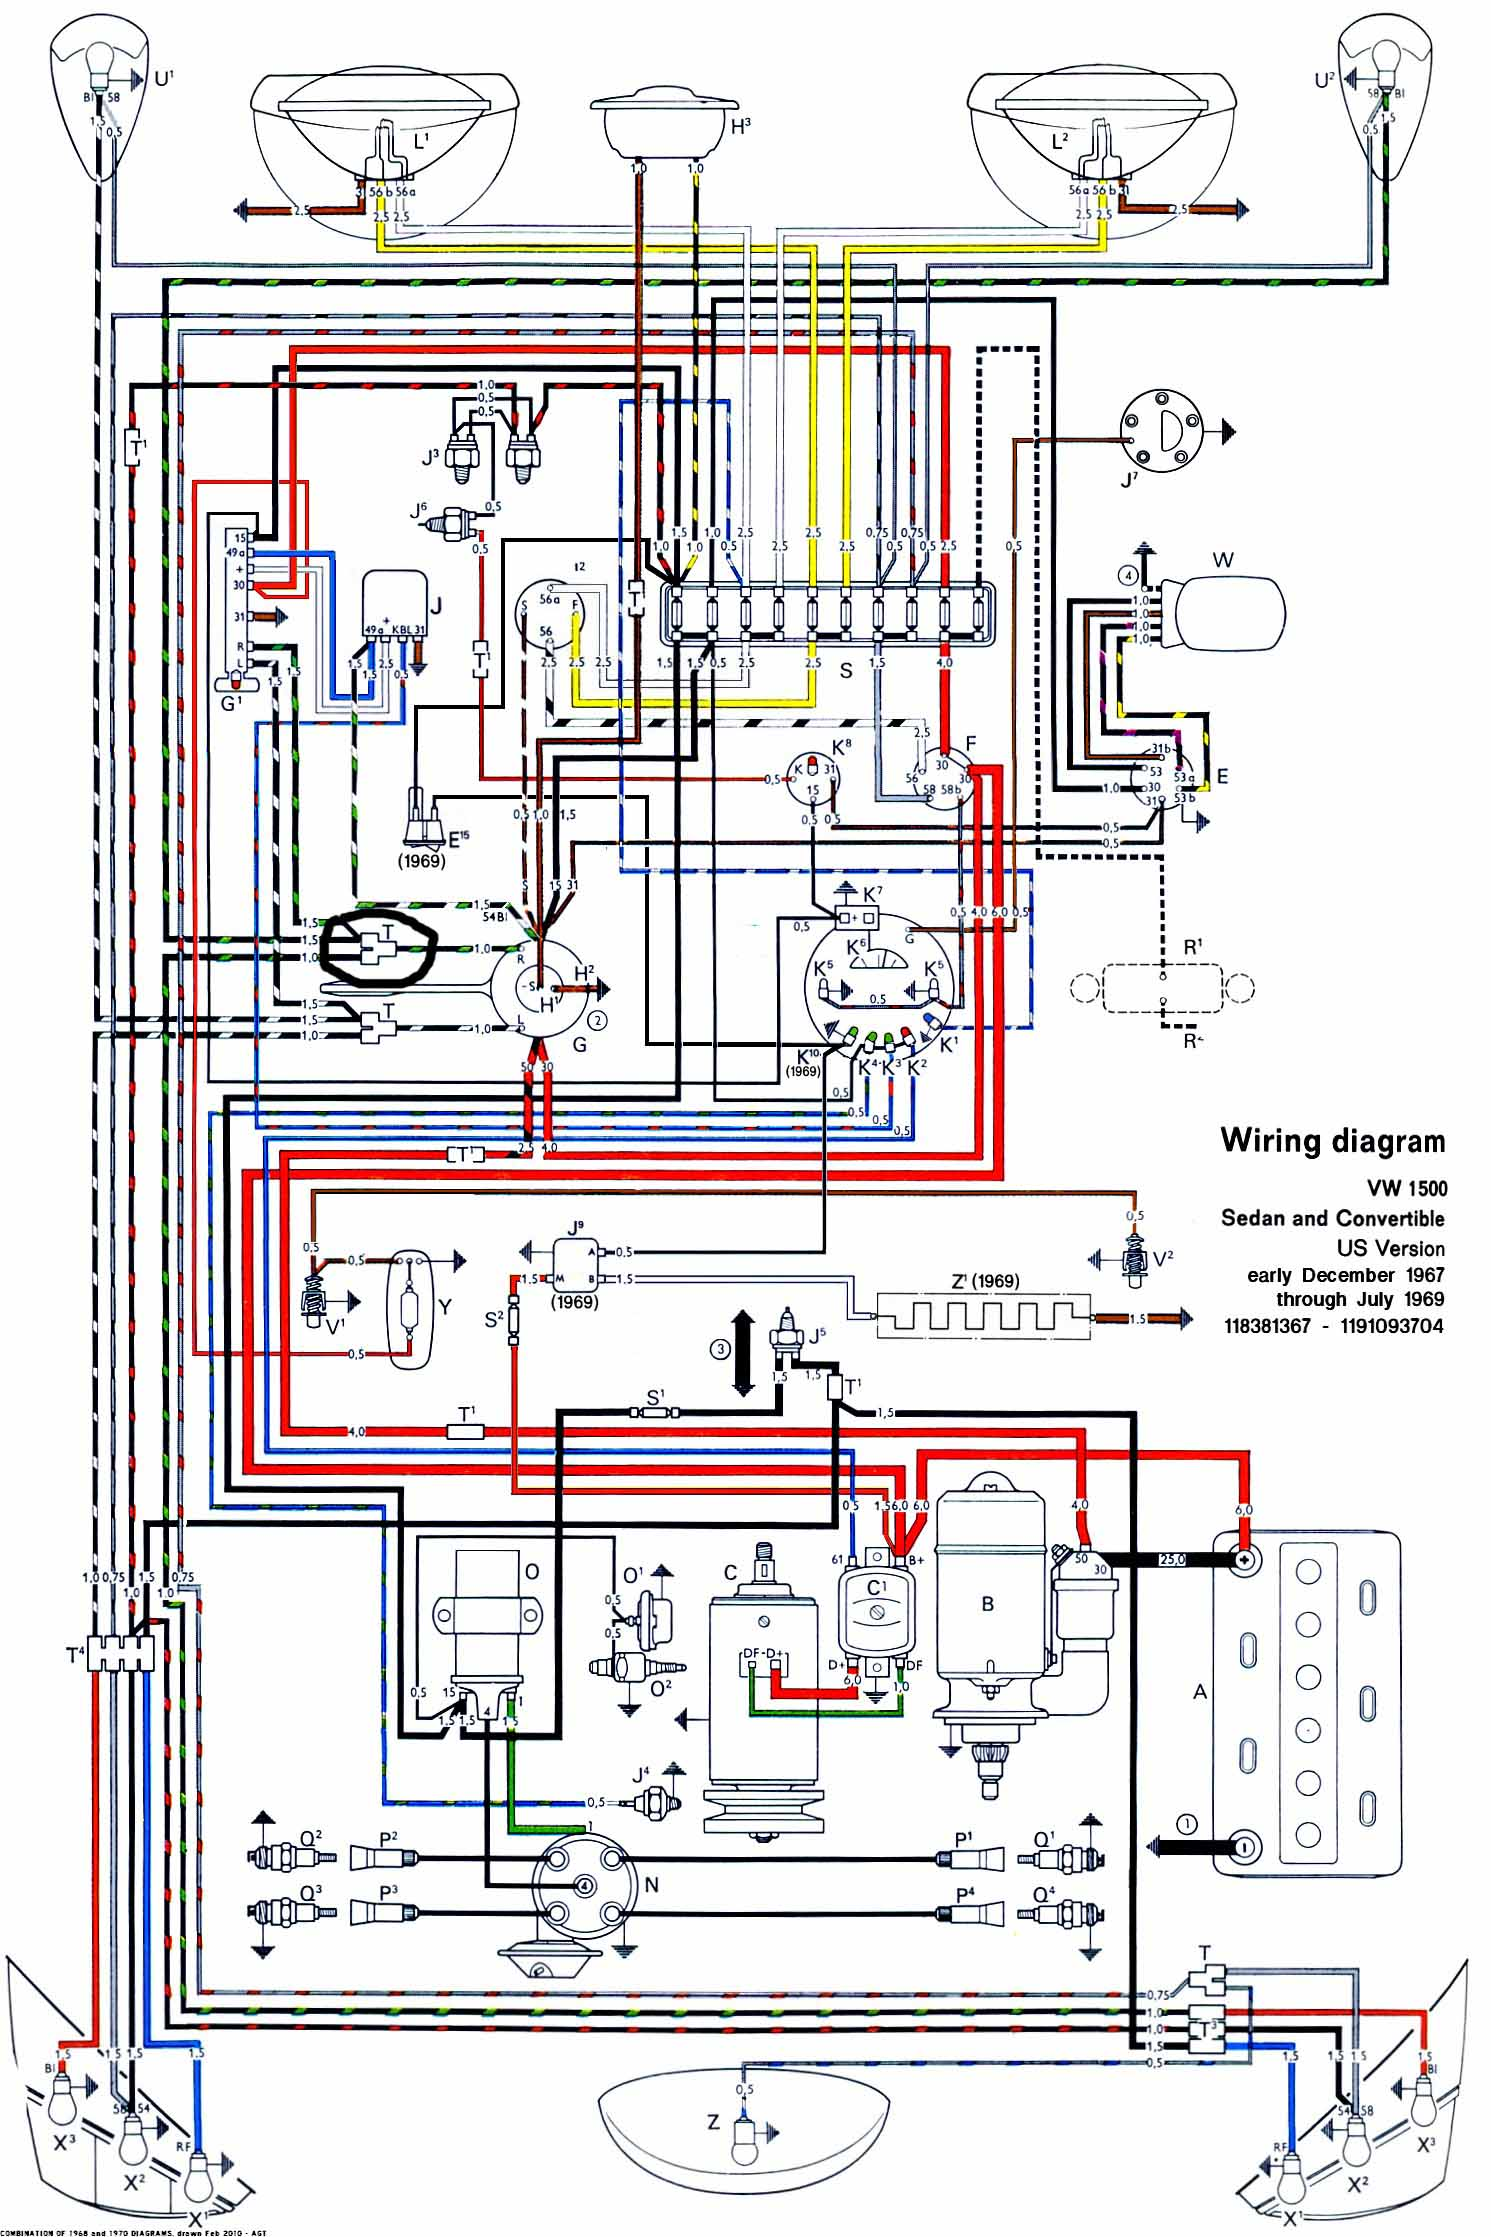 1974 Vw Wiring Radio Free Diagram For You 2002 Jetta Wagon 1971 Beetle The 1965